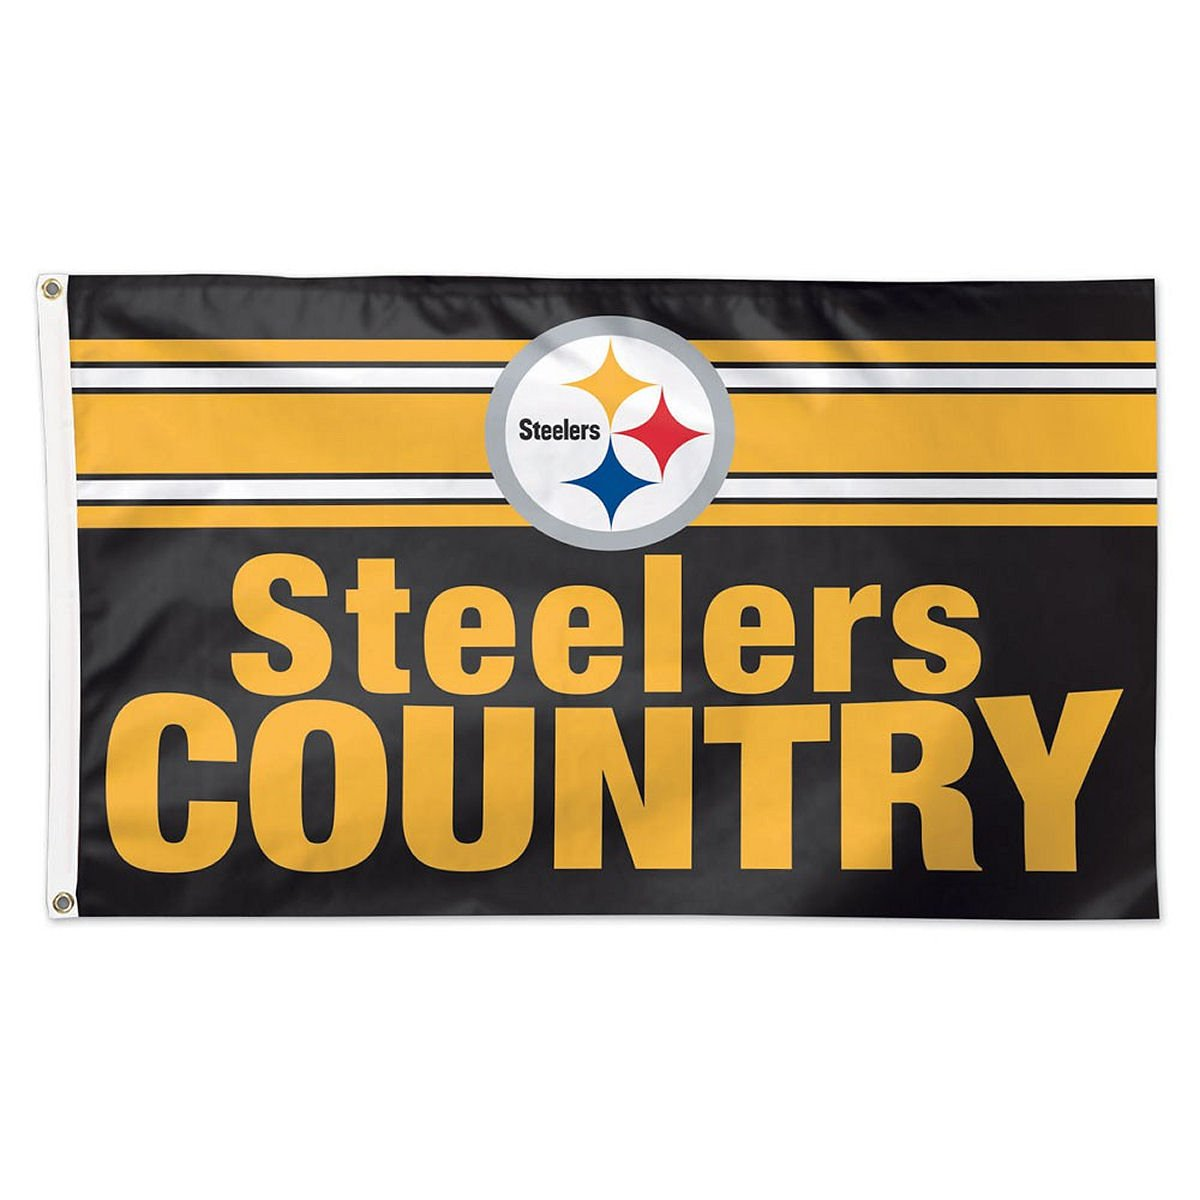 Amazon.com : WinCraft NFL Pittsburgh Steelers Steelers Country Flag ...